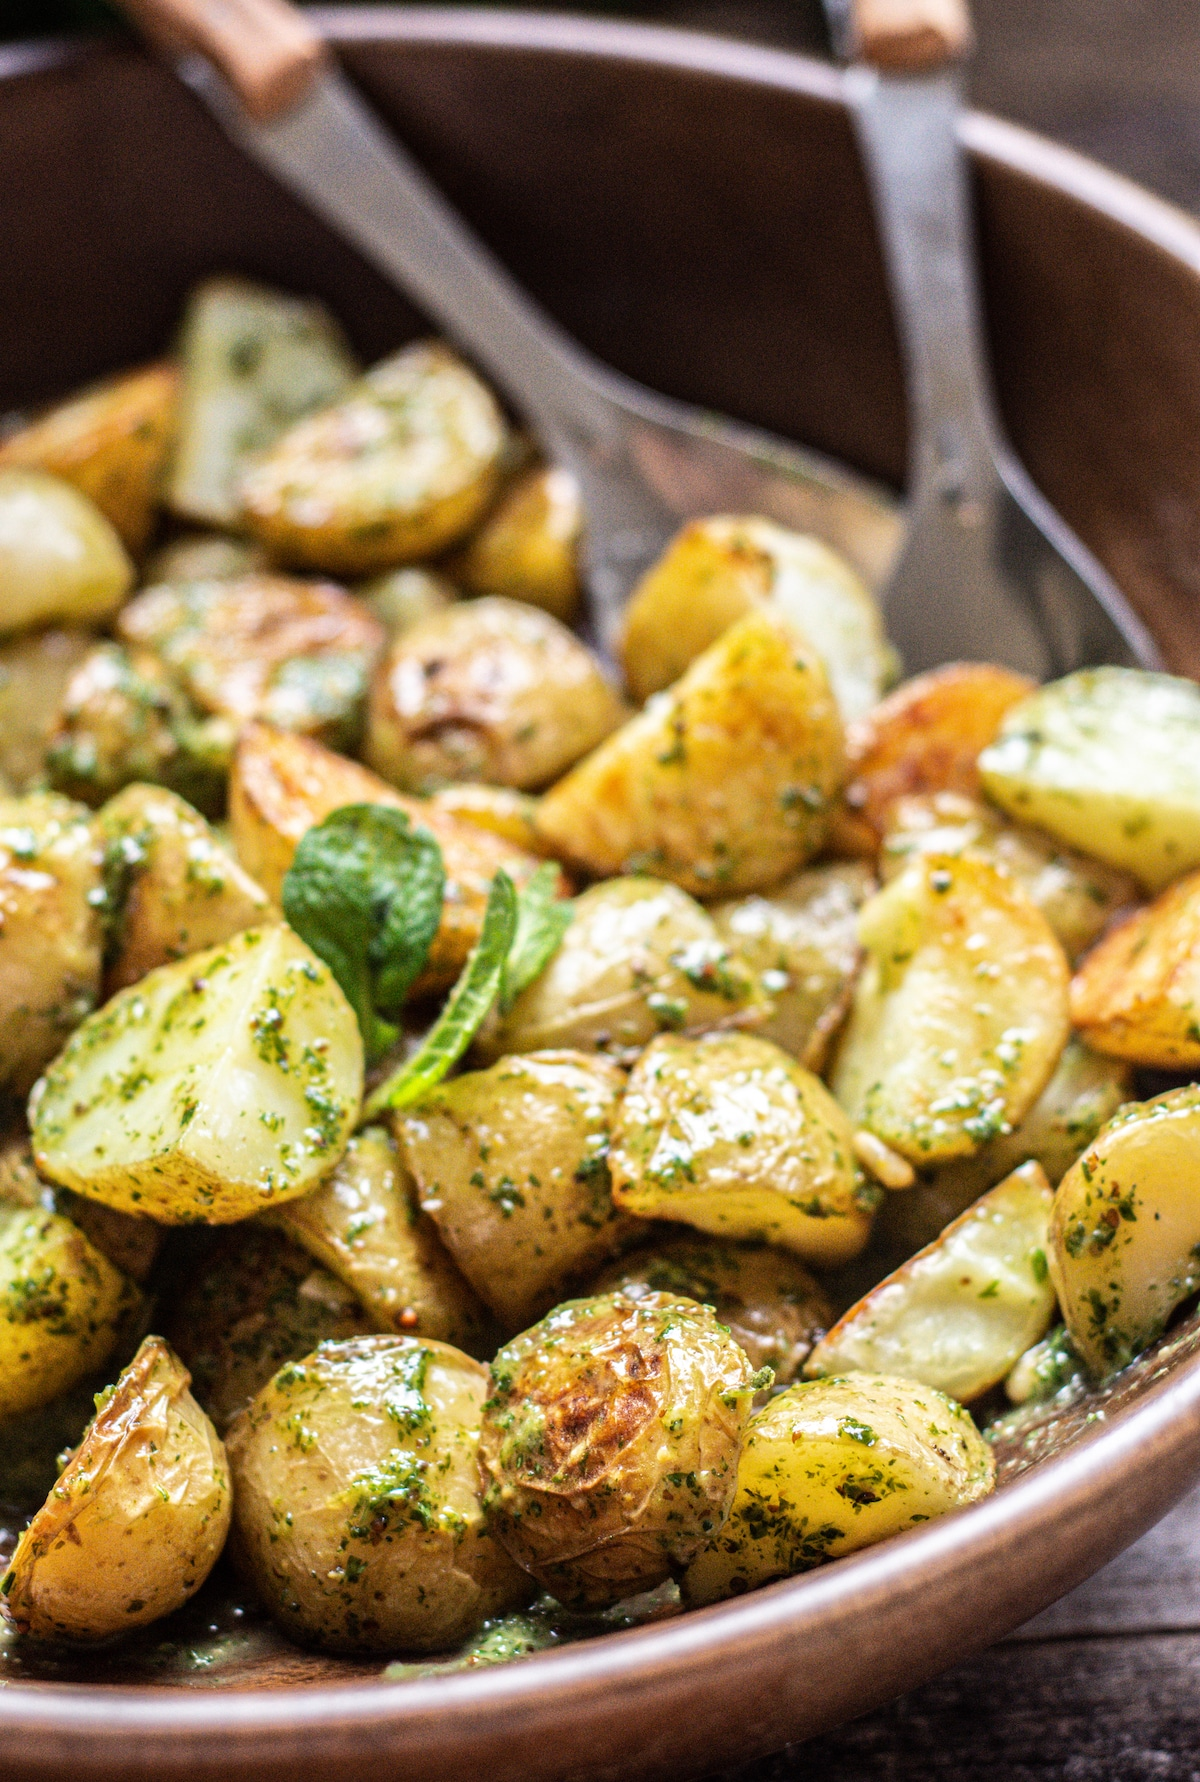 roasted potatoes tossed in green dressing